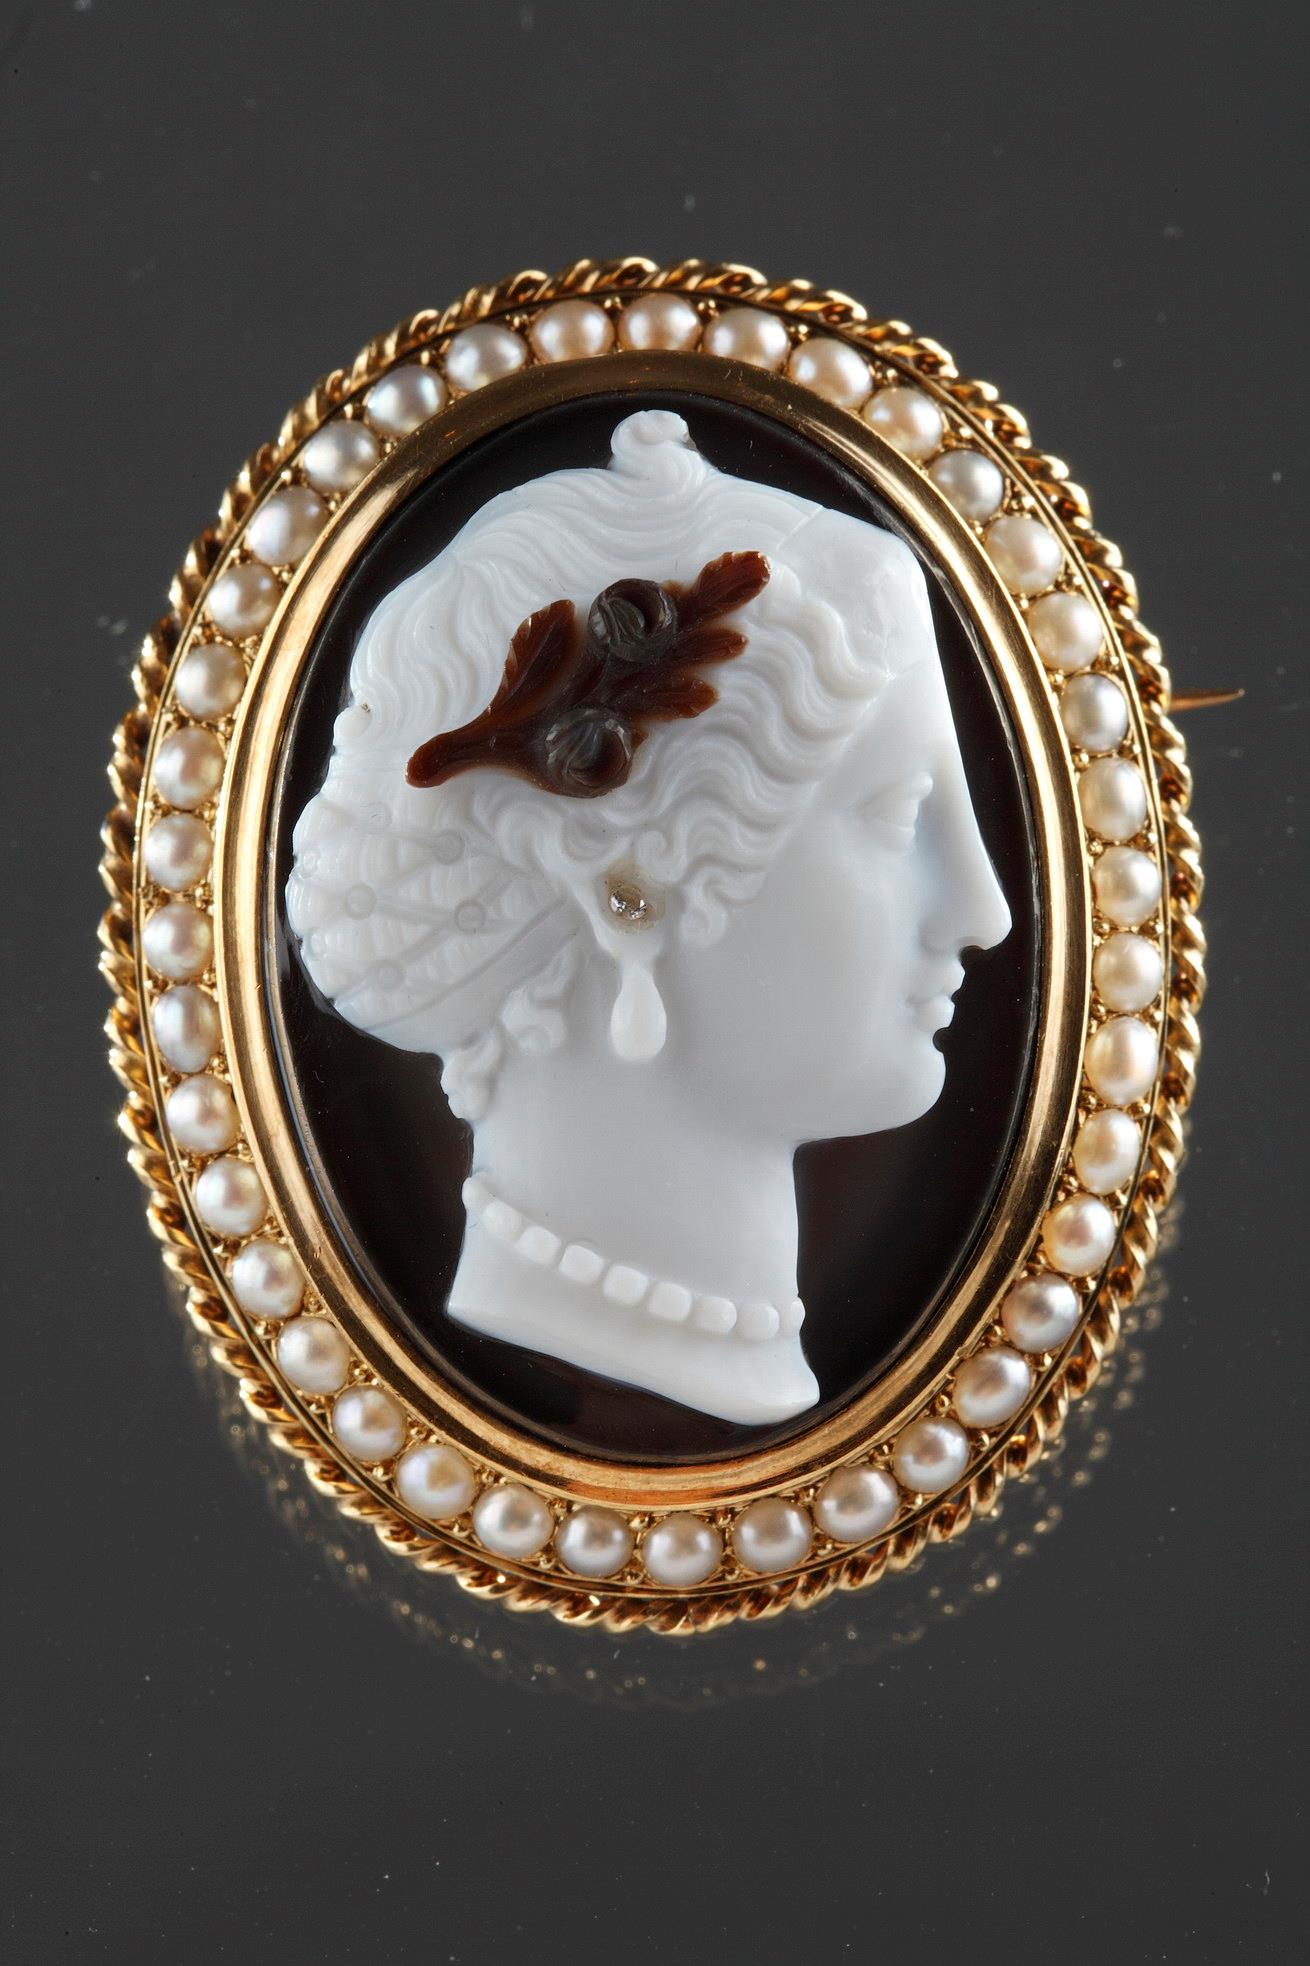 Gold-Mounted Agate Cameo Brooch.<br/> Second part of the 19th century. Napoleon III.